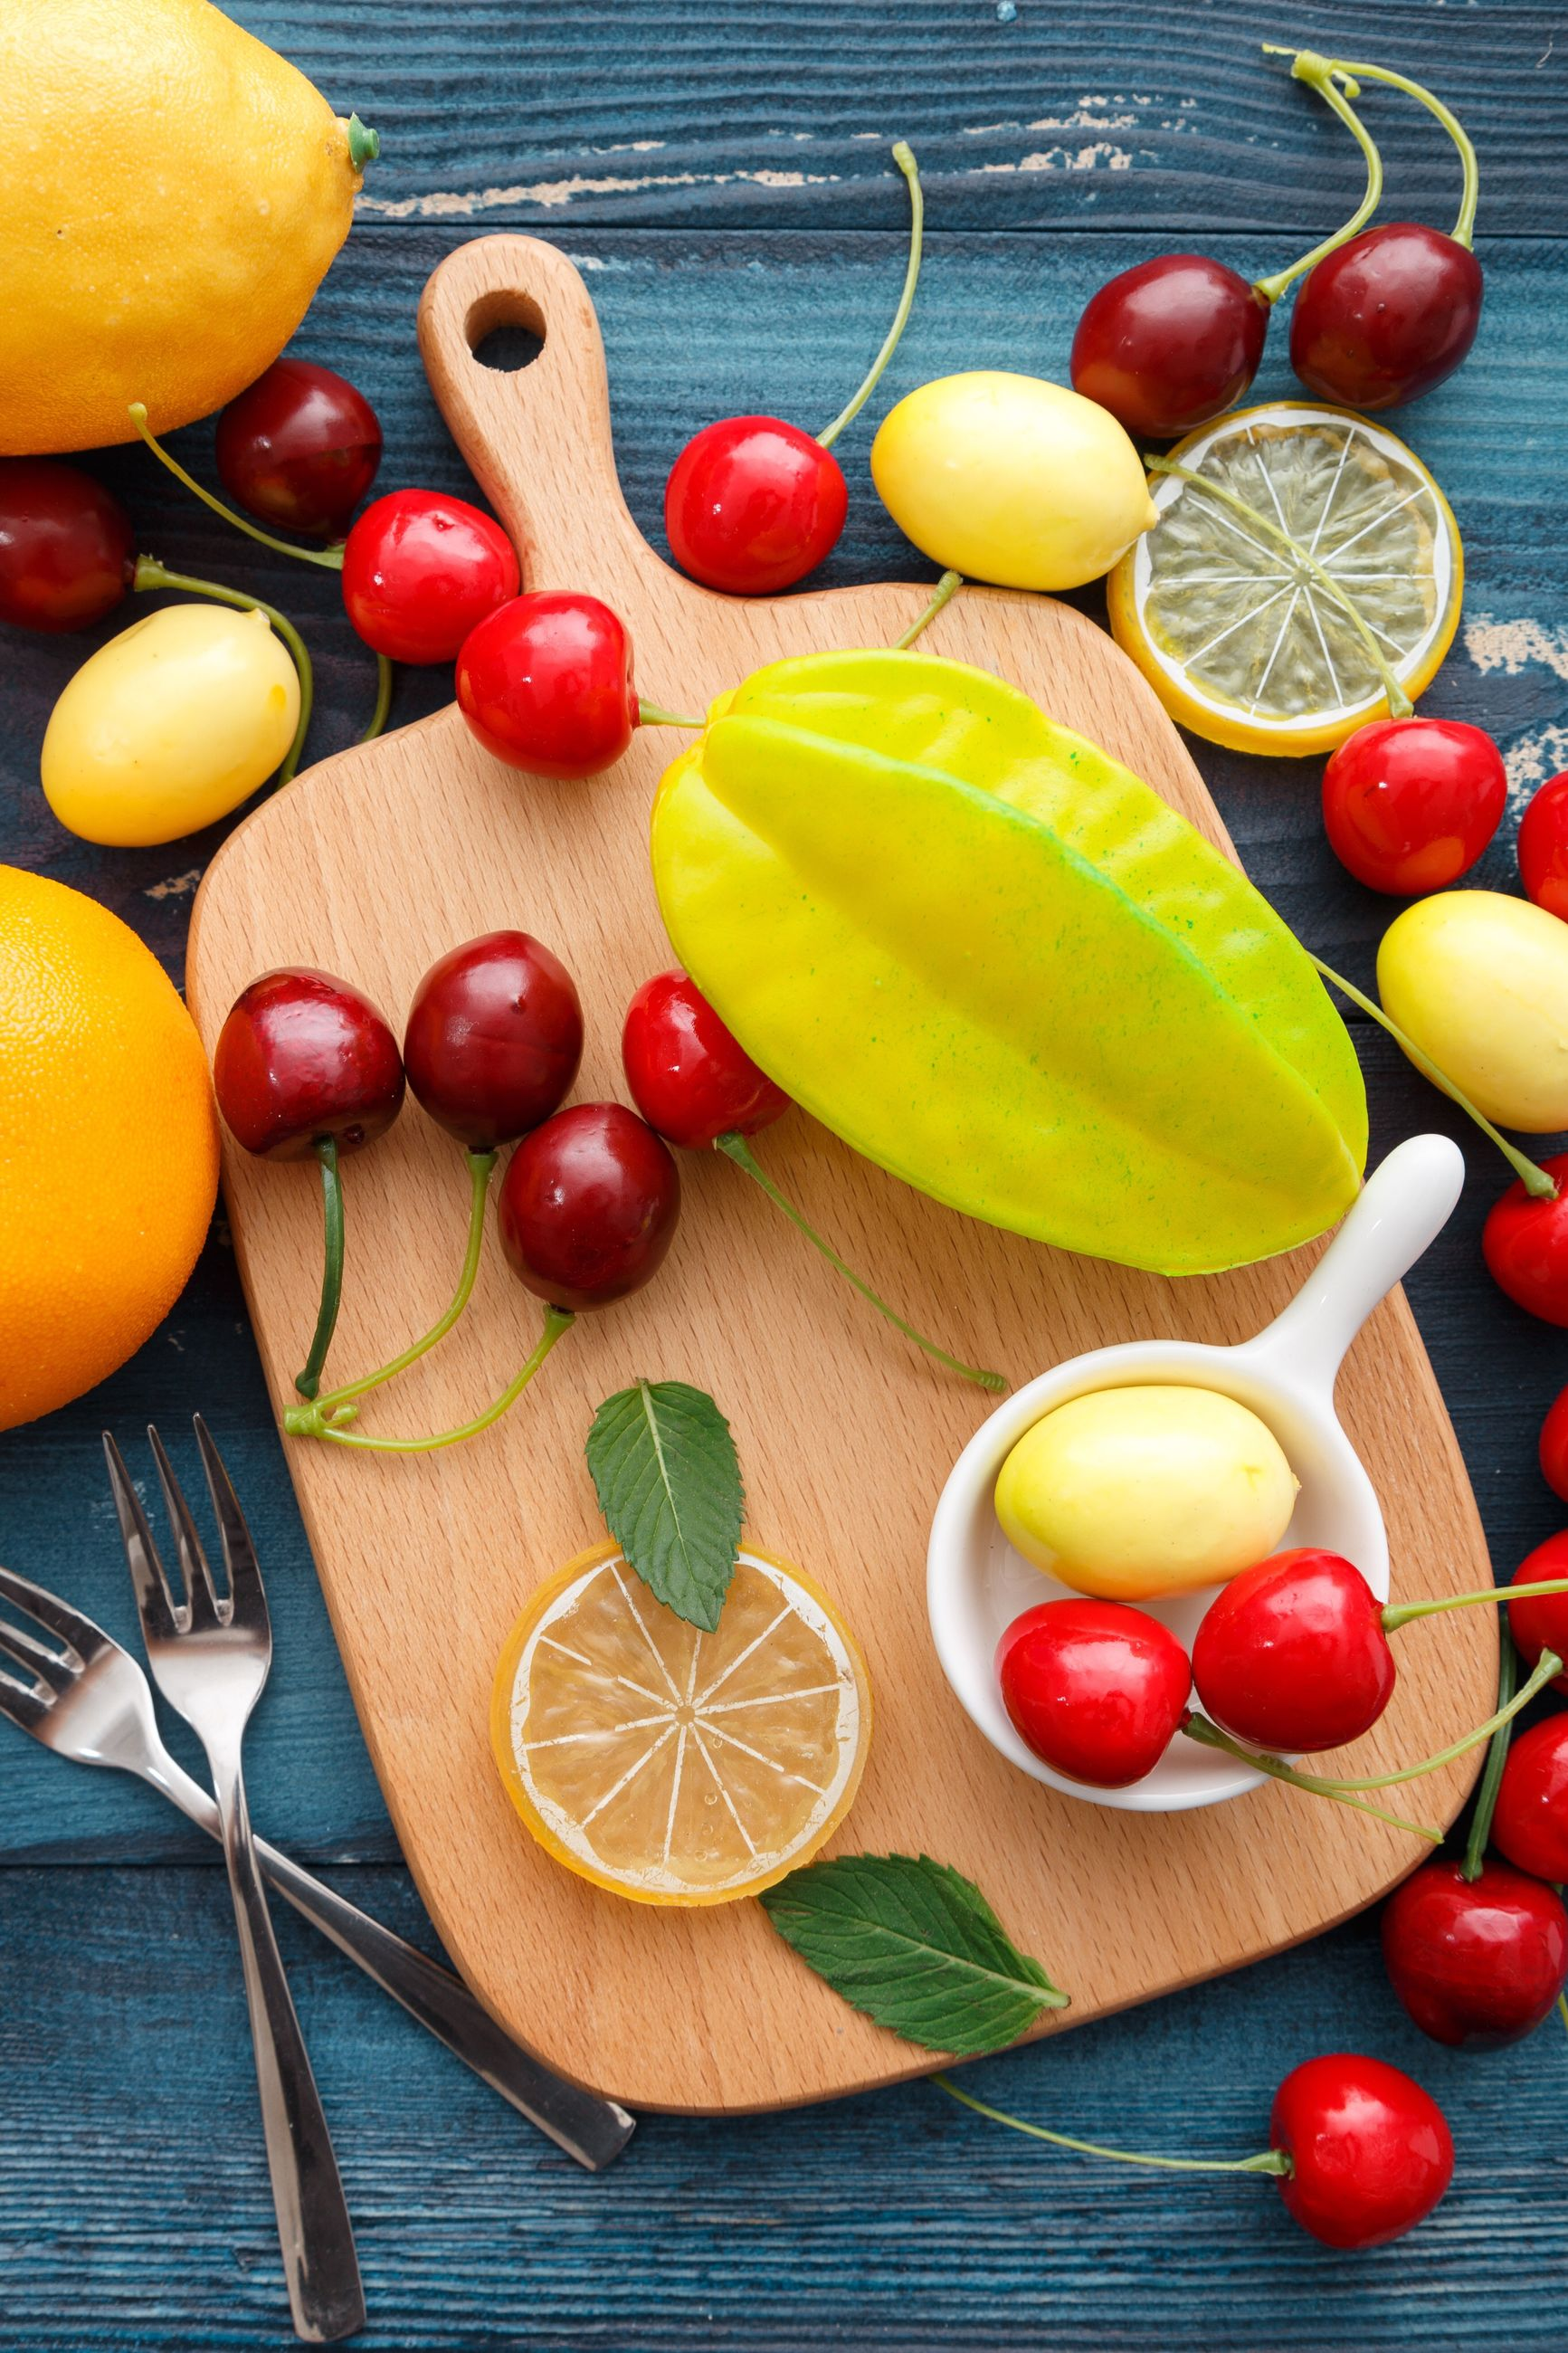 food and drink, freshness, healthy eating, still life, food, high angle view, indoors, variation, no people, table, wood - material, fruit, vegetable, tomato, leaf, wooden spoon, close-up, day